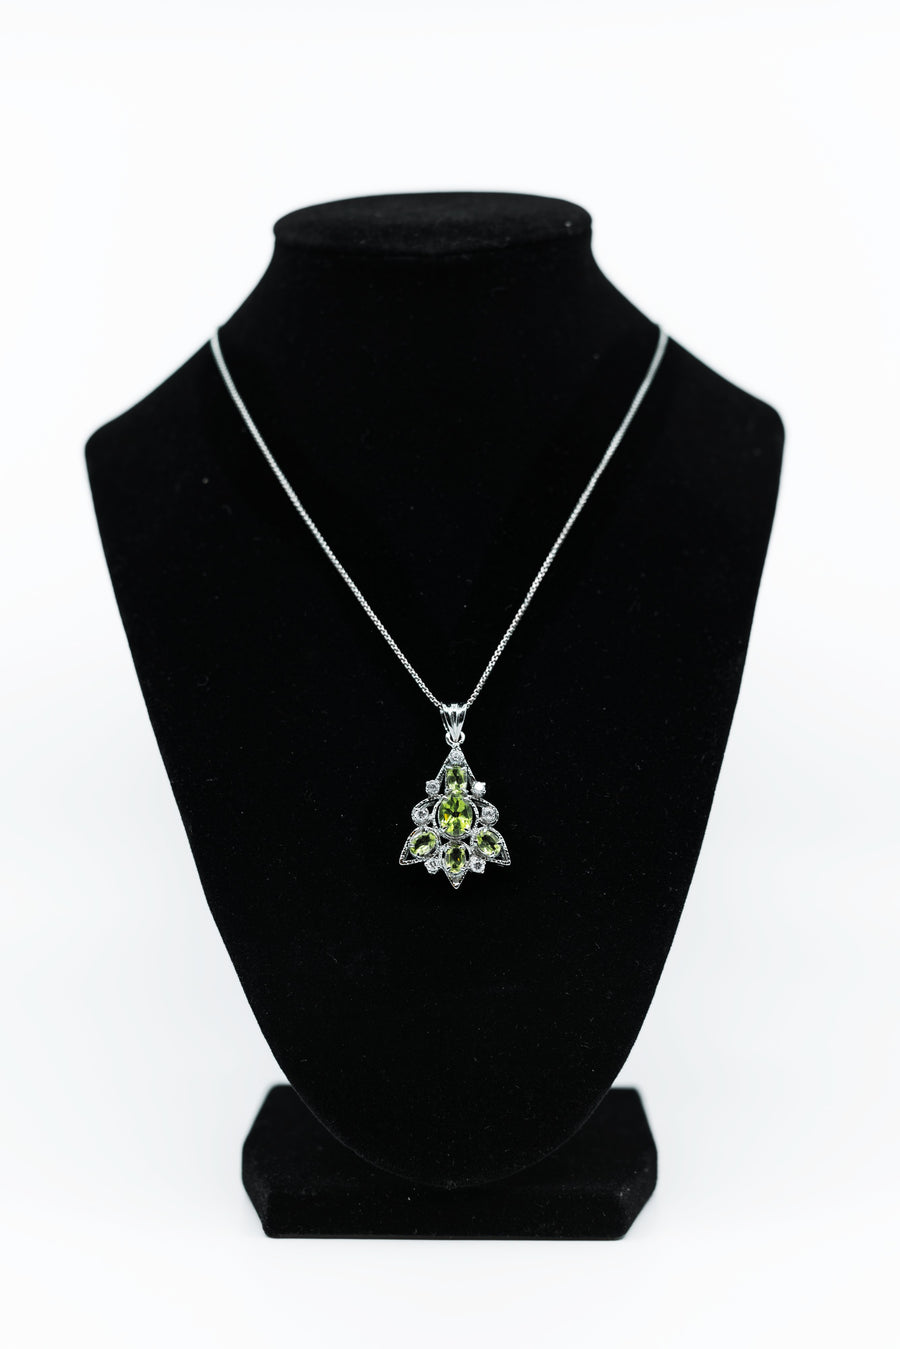 Green Graduate Leaf Pendant with White Sterling Silver